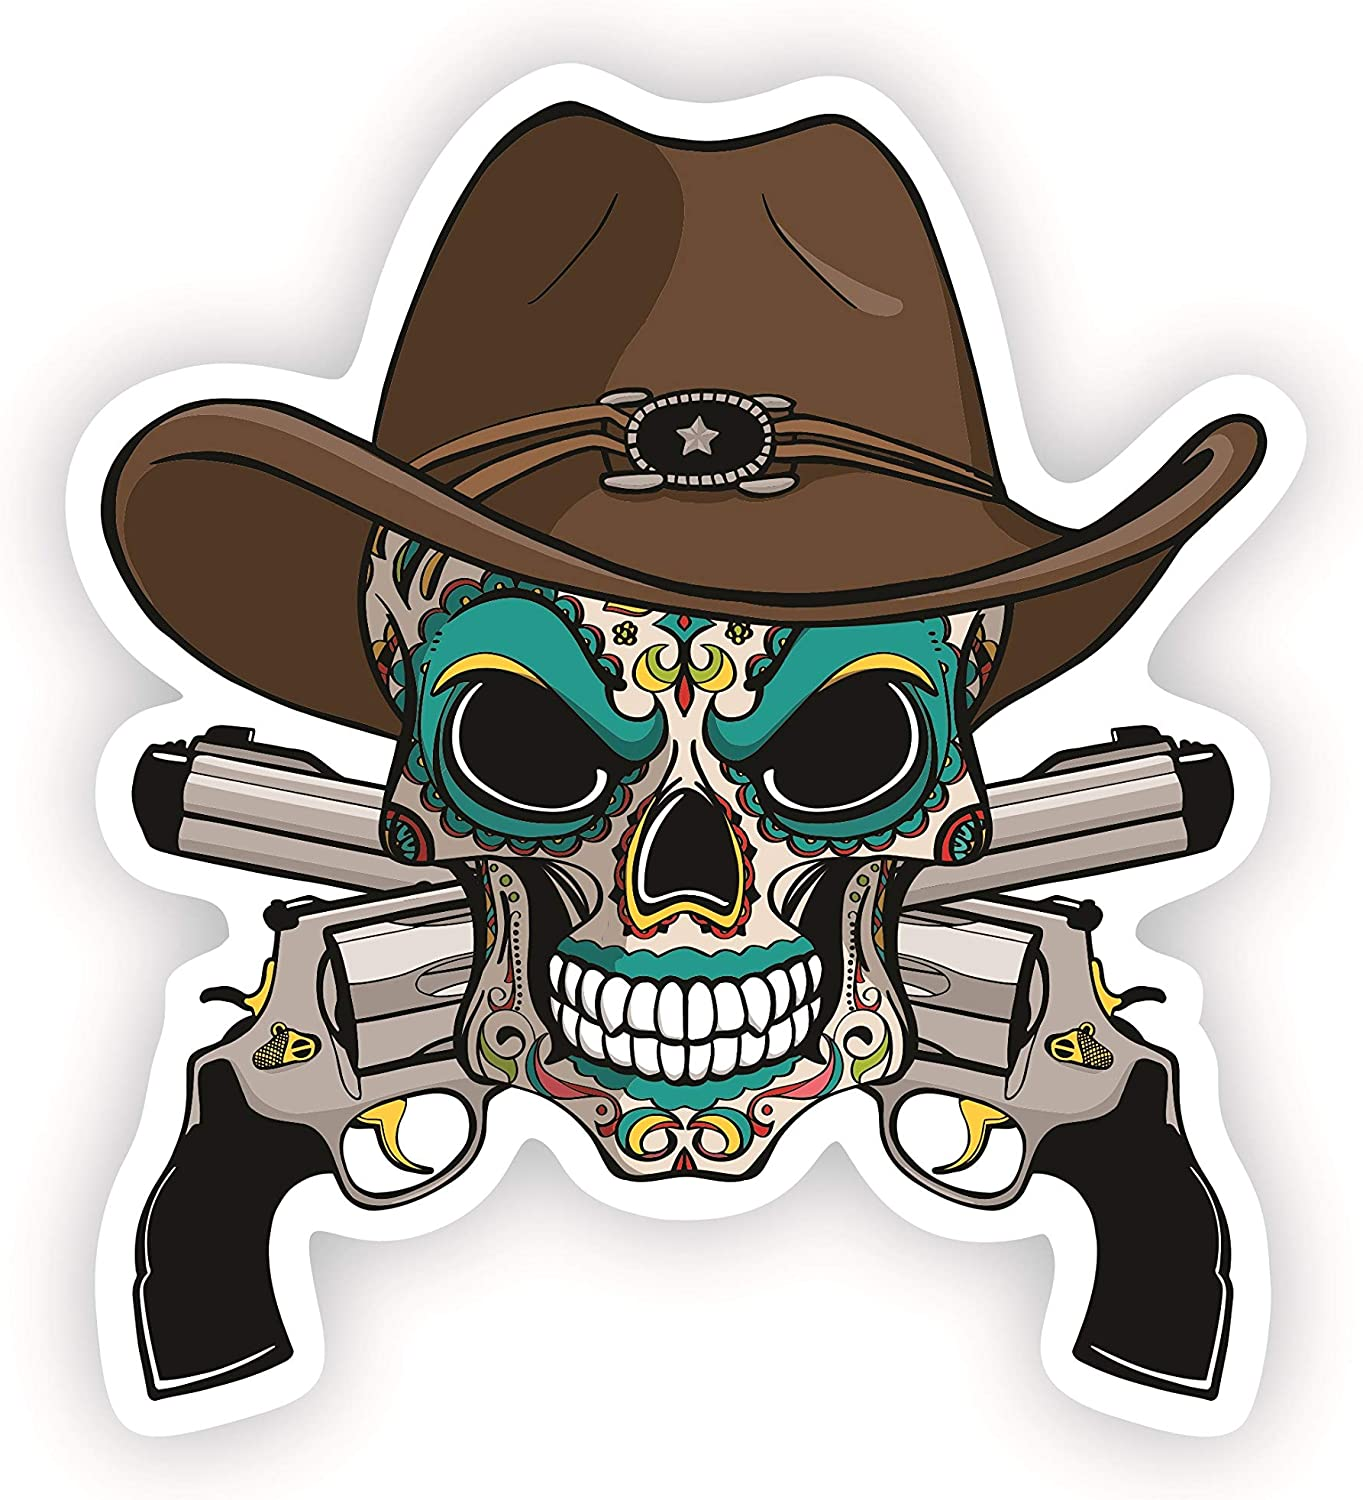 5.8 Inches. Horror Decor Crossed Guns Vinyl Decal For Cars Skull Color Stickers For Laptop//Macbook Decals Day Of The Dead Car Decal Home Decor A/&B Traders Cow boy Hat Sugar Skull Stickers